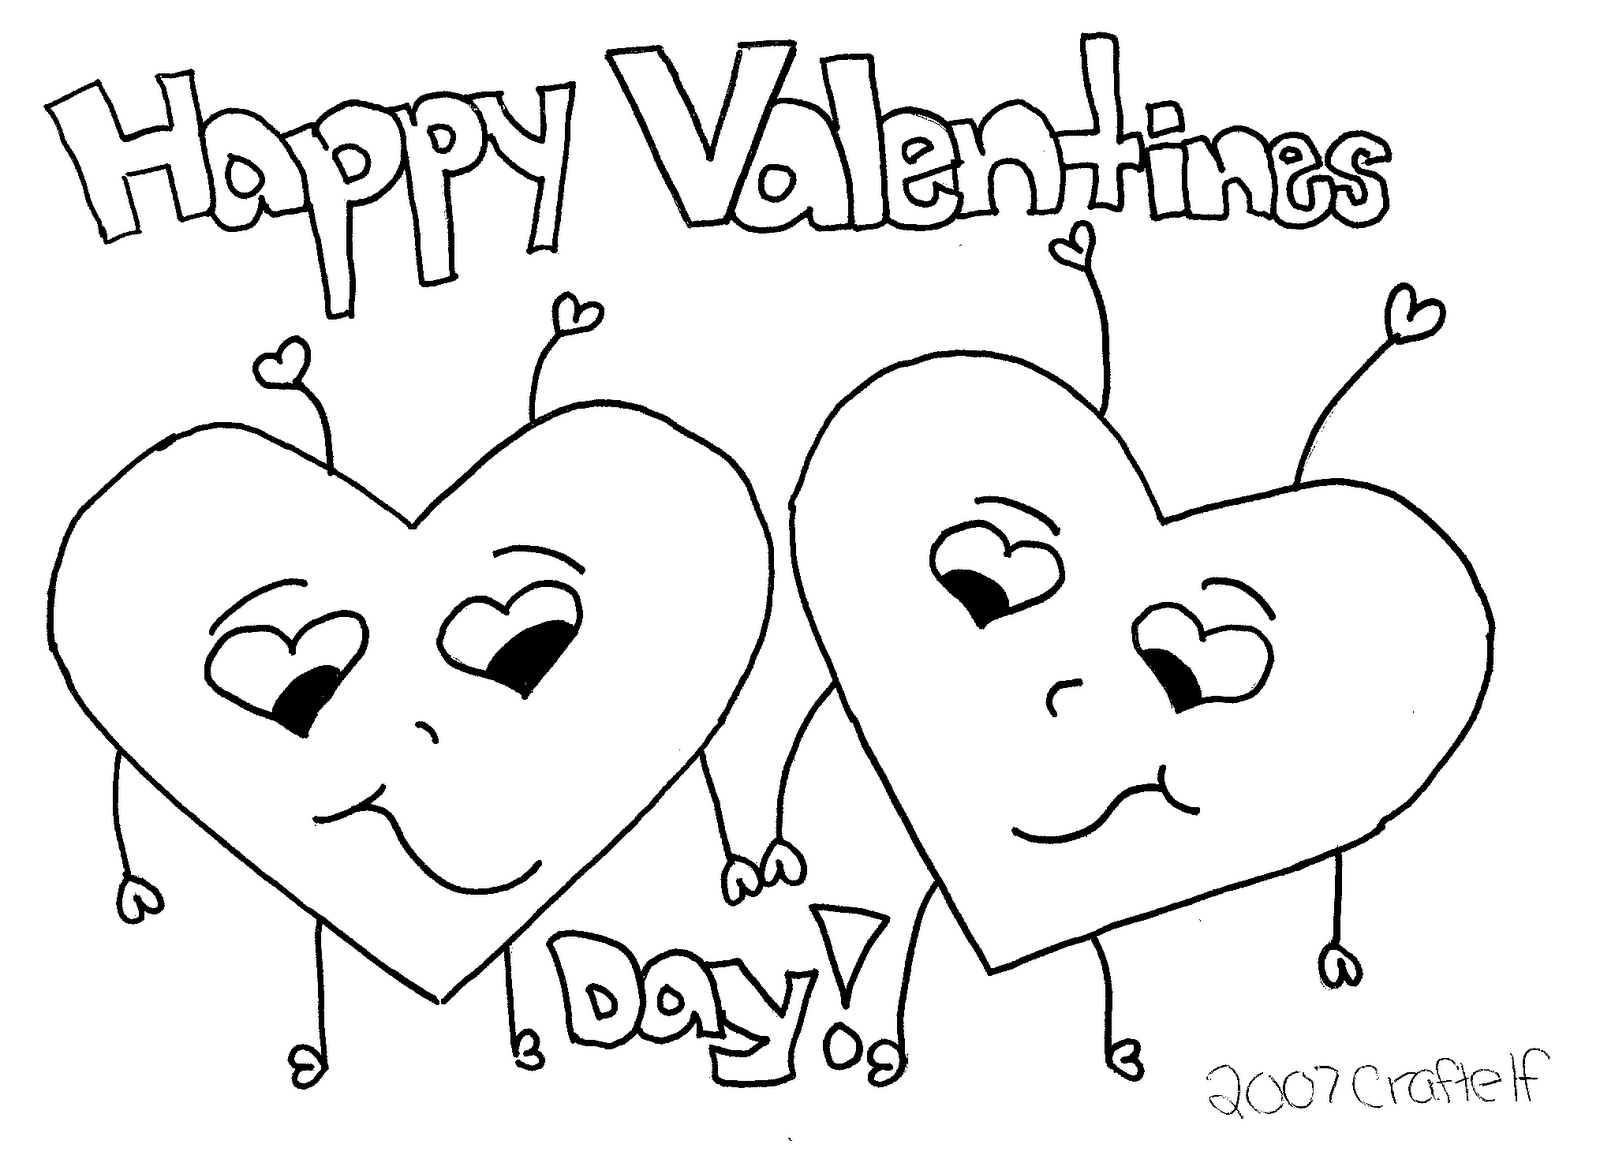 valentines day coloring pages free printable valentine39s day coloring pages gtgt disney coloring pages pages valentines printable day free coloring